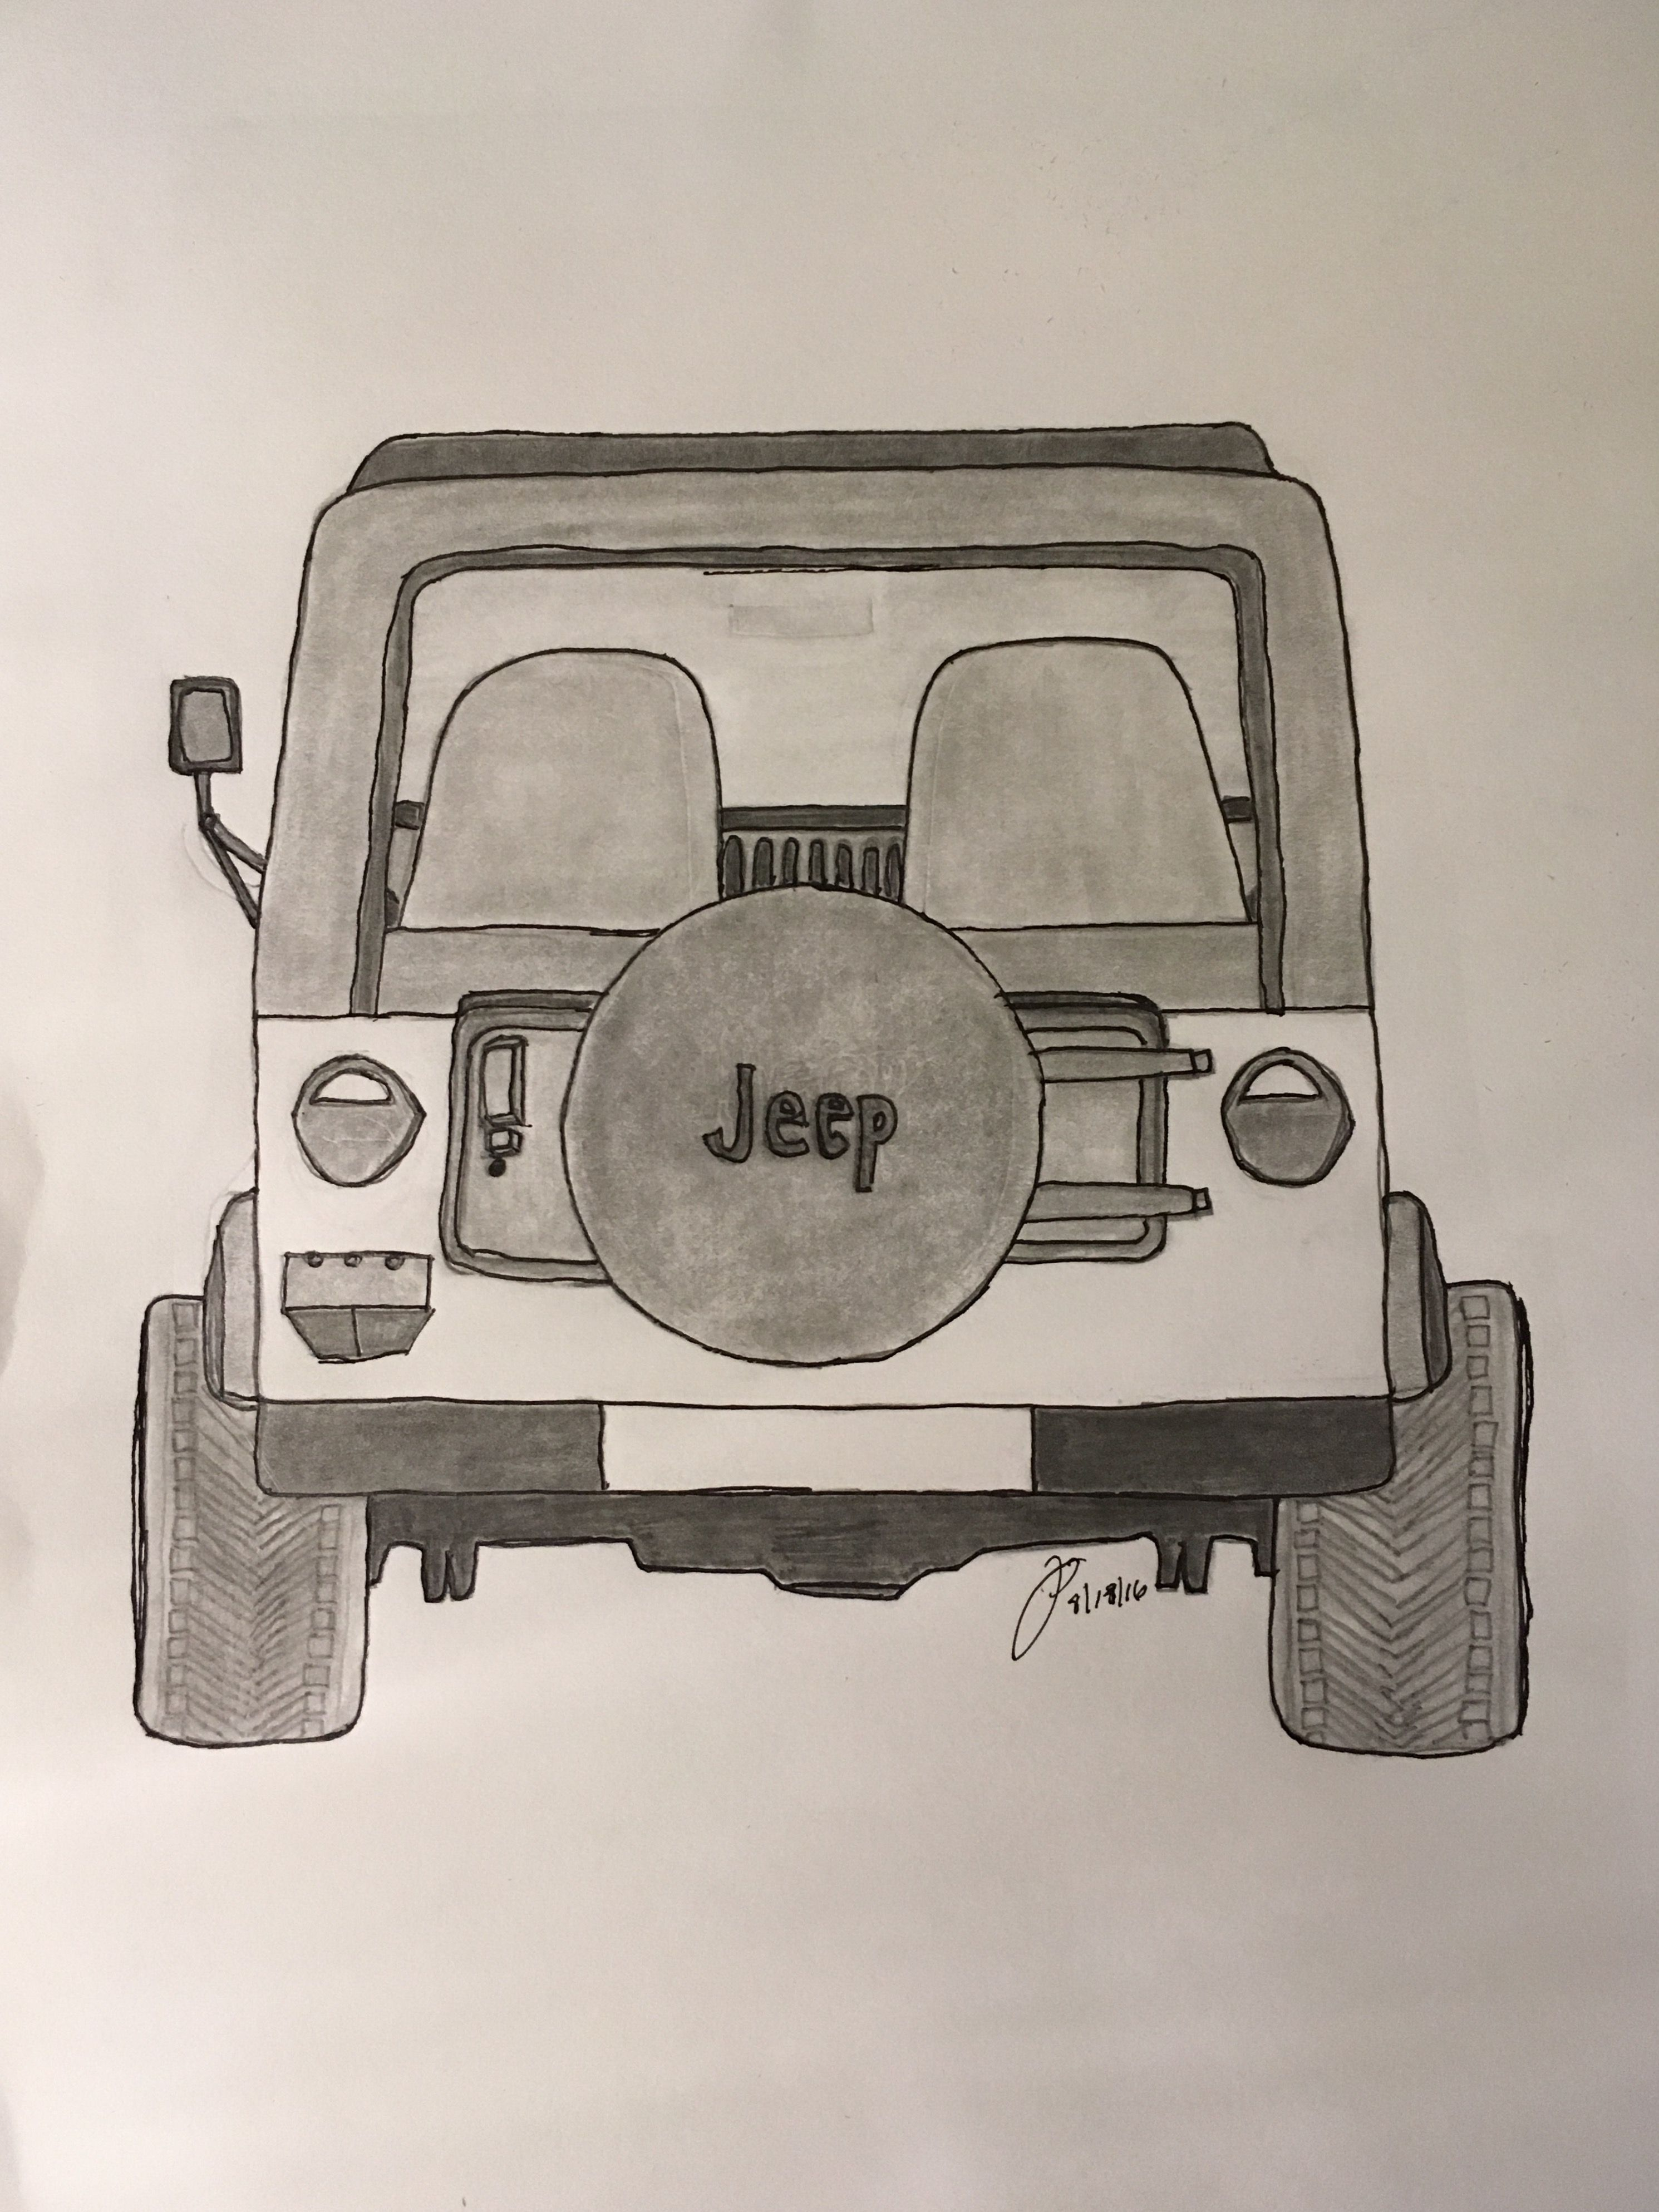 How To Draw A Jeep Wrangler, Step by Step, Drawing Guide